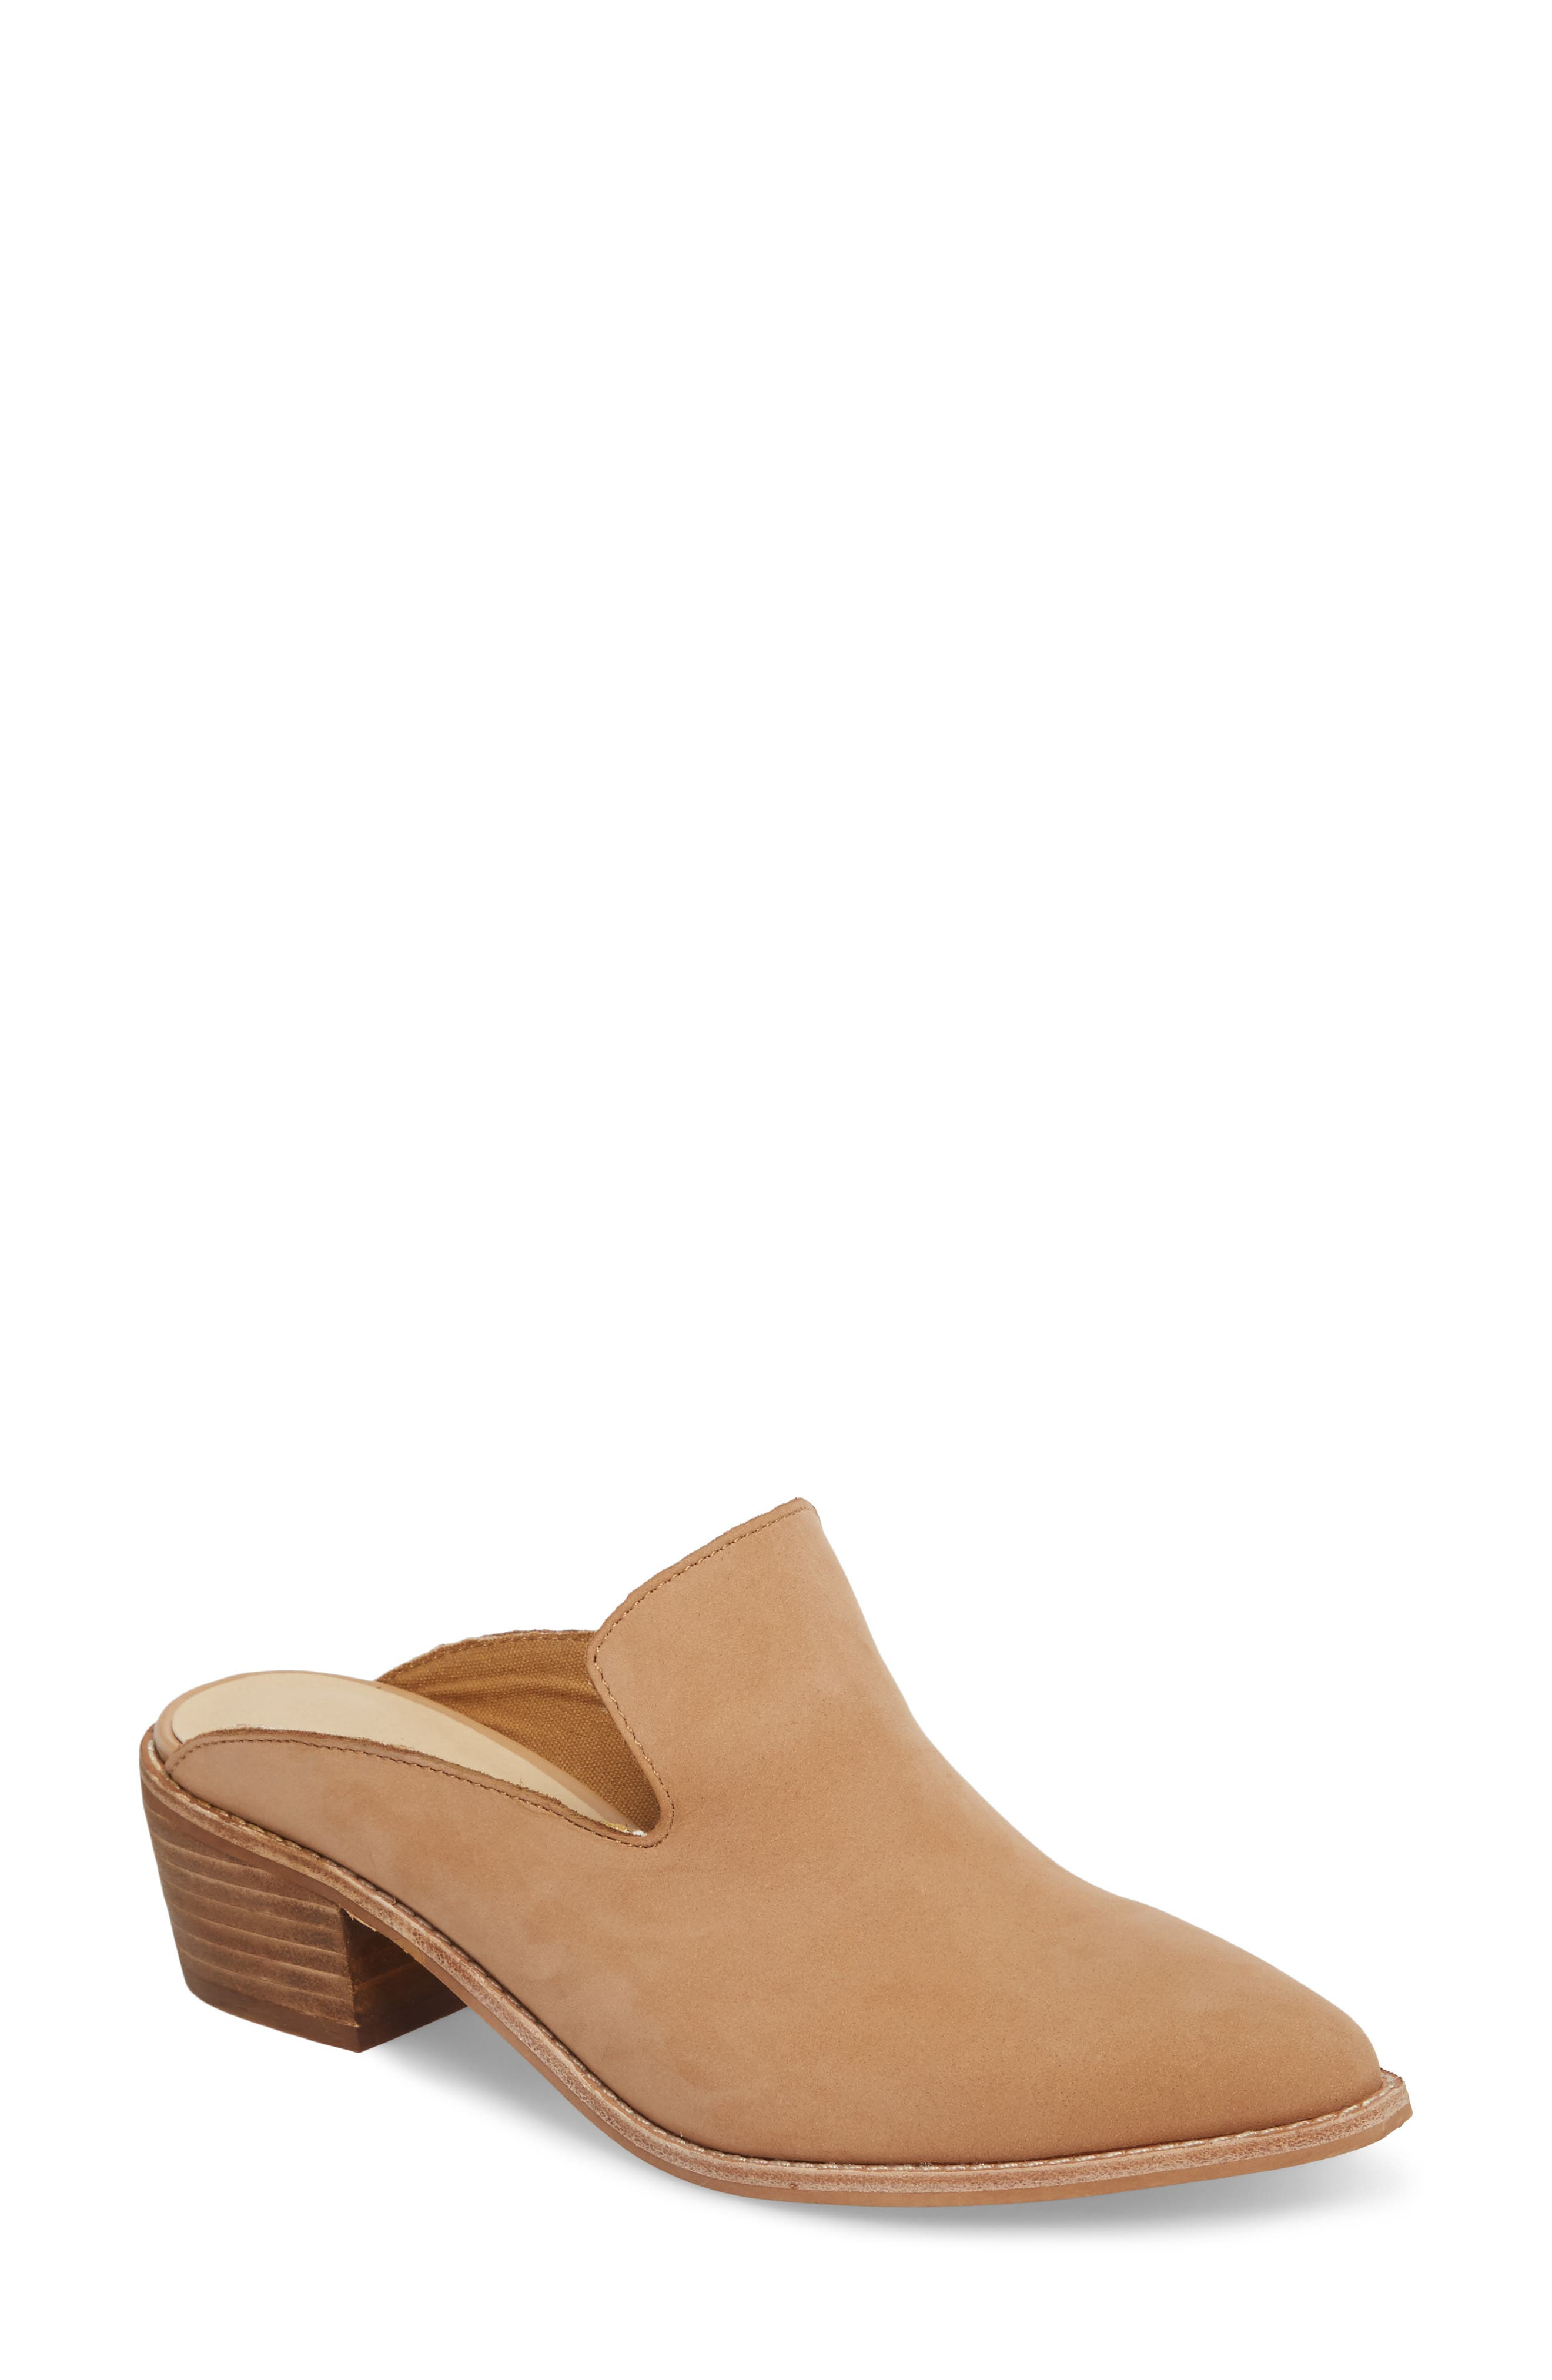 Marnie Loafer Mule,                         Main,                         color, Natural